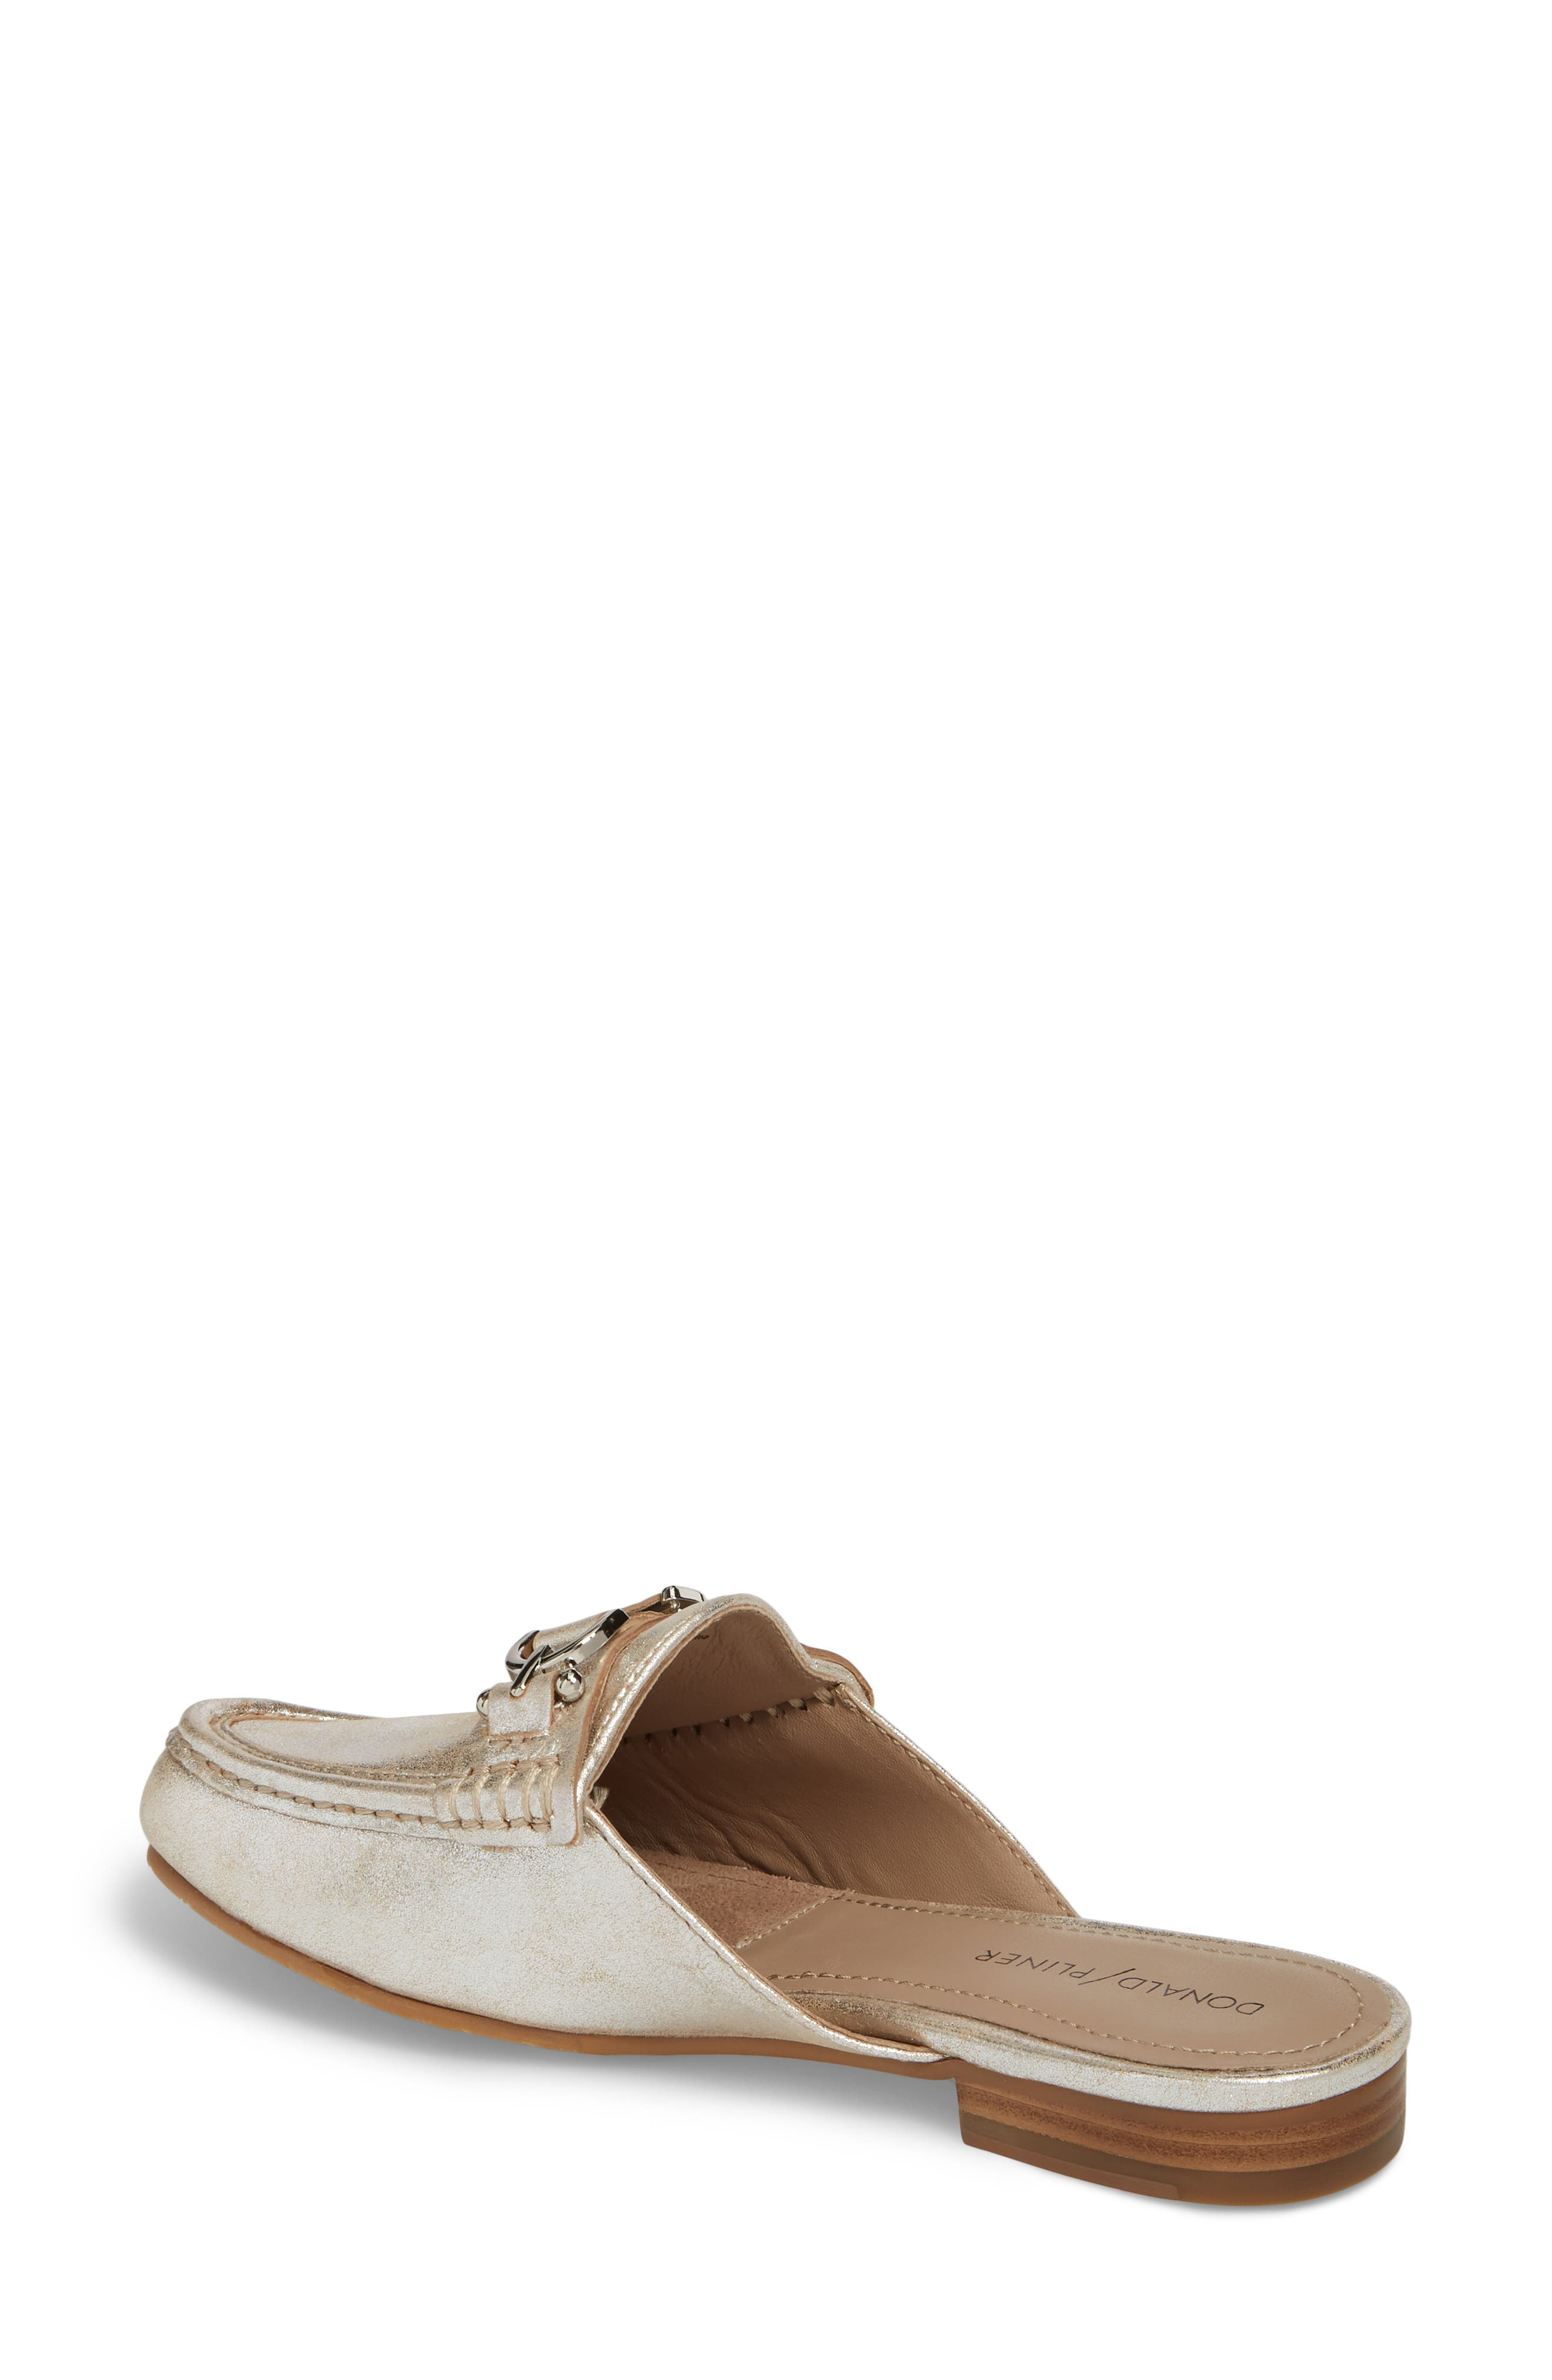 Sylvi Loafer Mule,                             Alternate thumbnail 2, color,                             Silver Leather